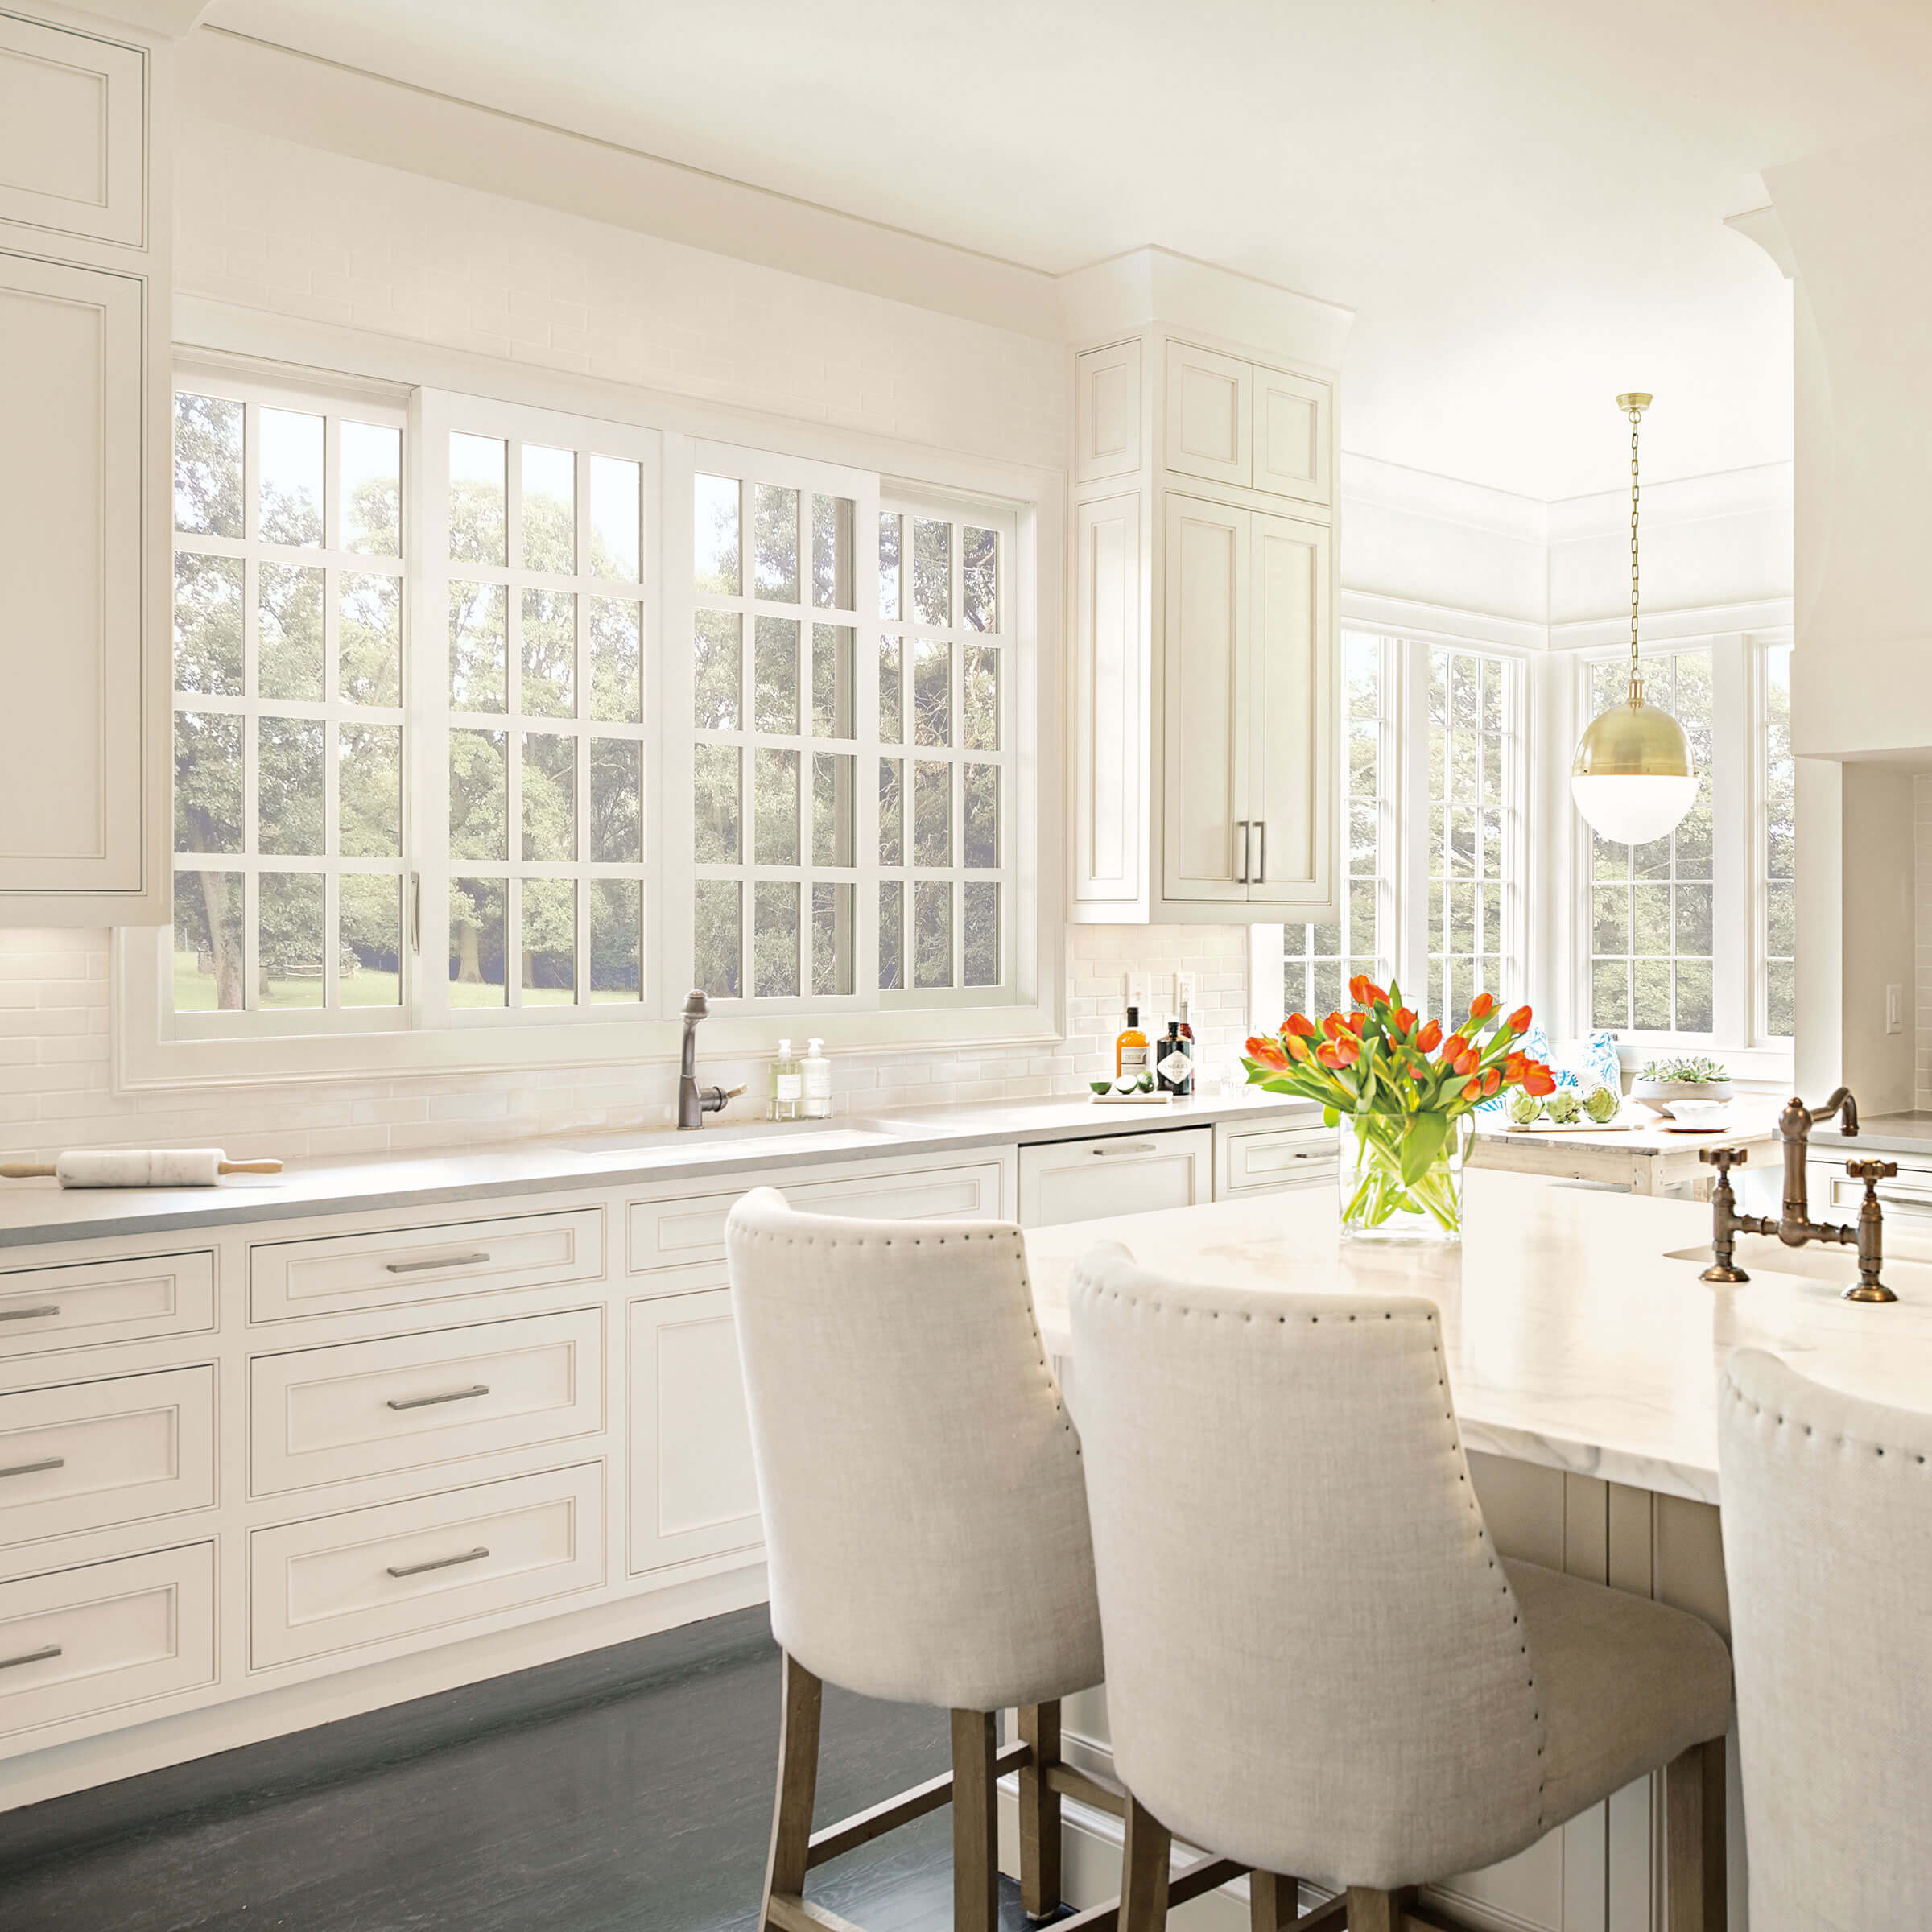 White Kitchen With Signature Ultimate Glider 4 Panel Biparting Windows